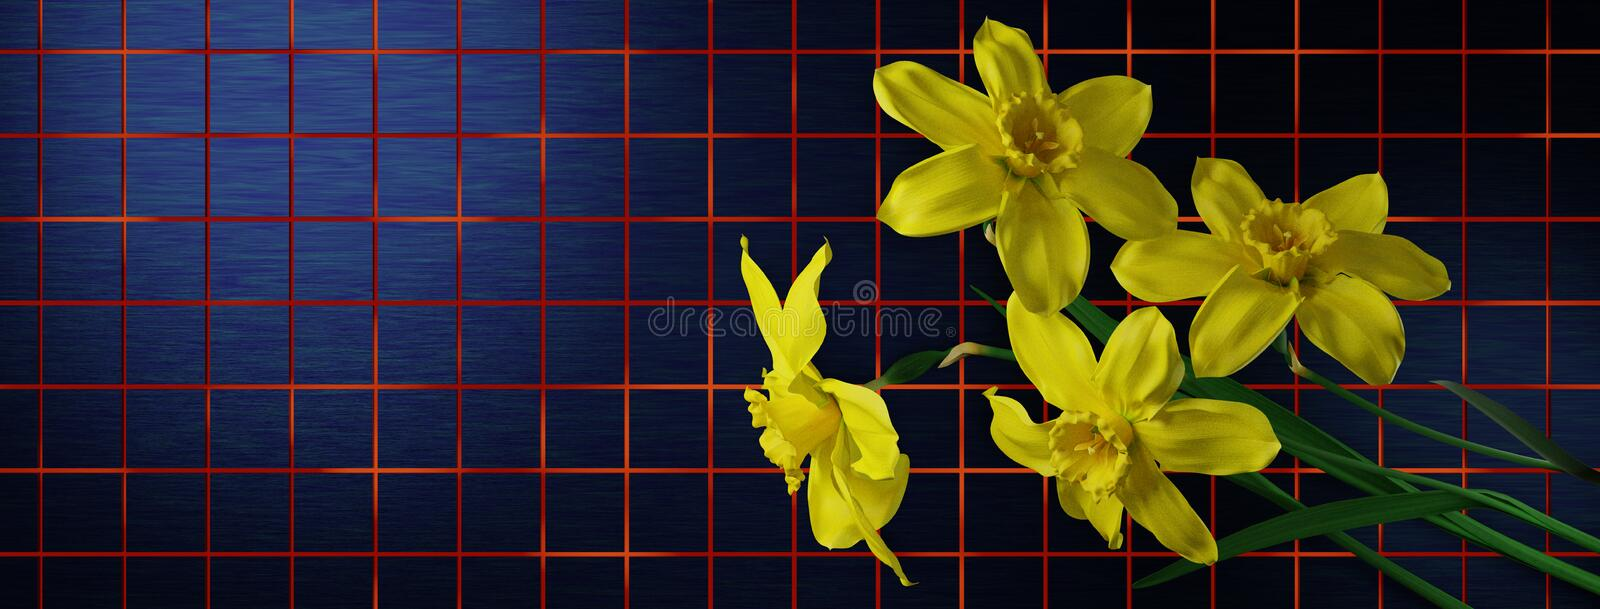 Illustration of daffodils as a web banner stock illustration